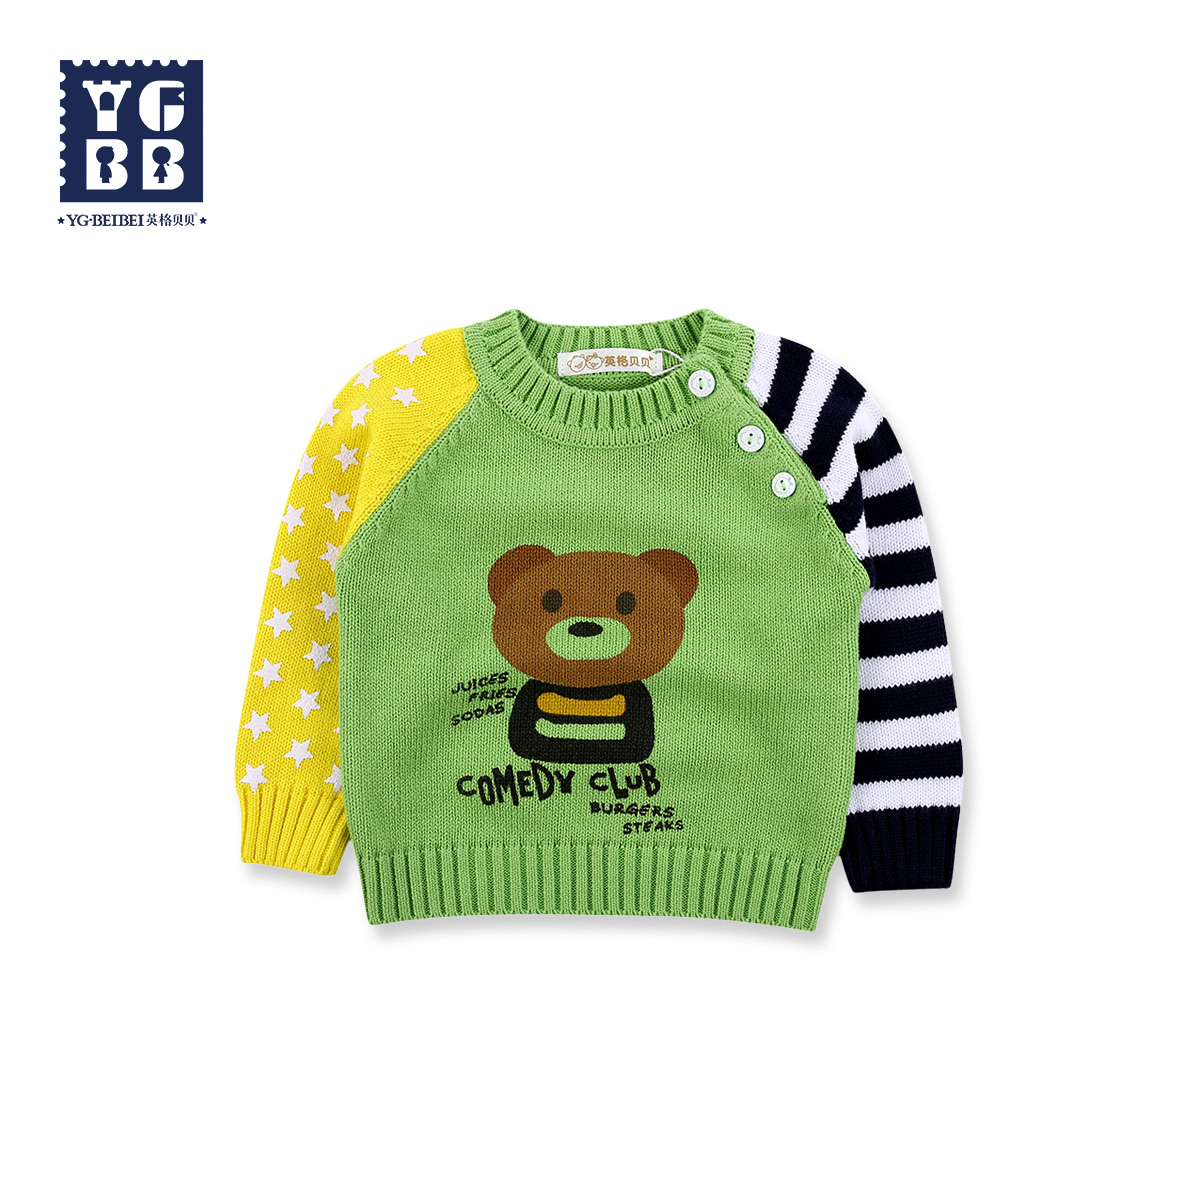 Ying ge beibei spring and autumn new baby sweater knit cotton sweater baby boy clothes kids spring and autumn coat